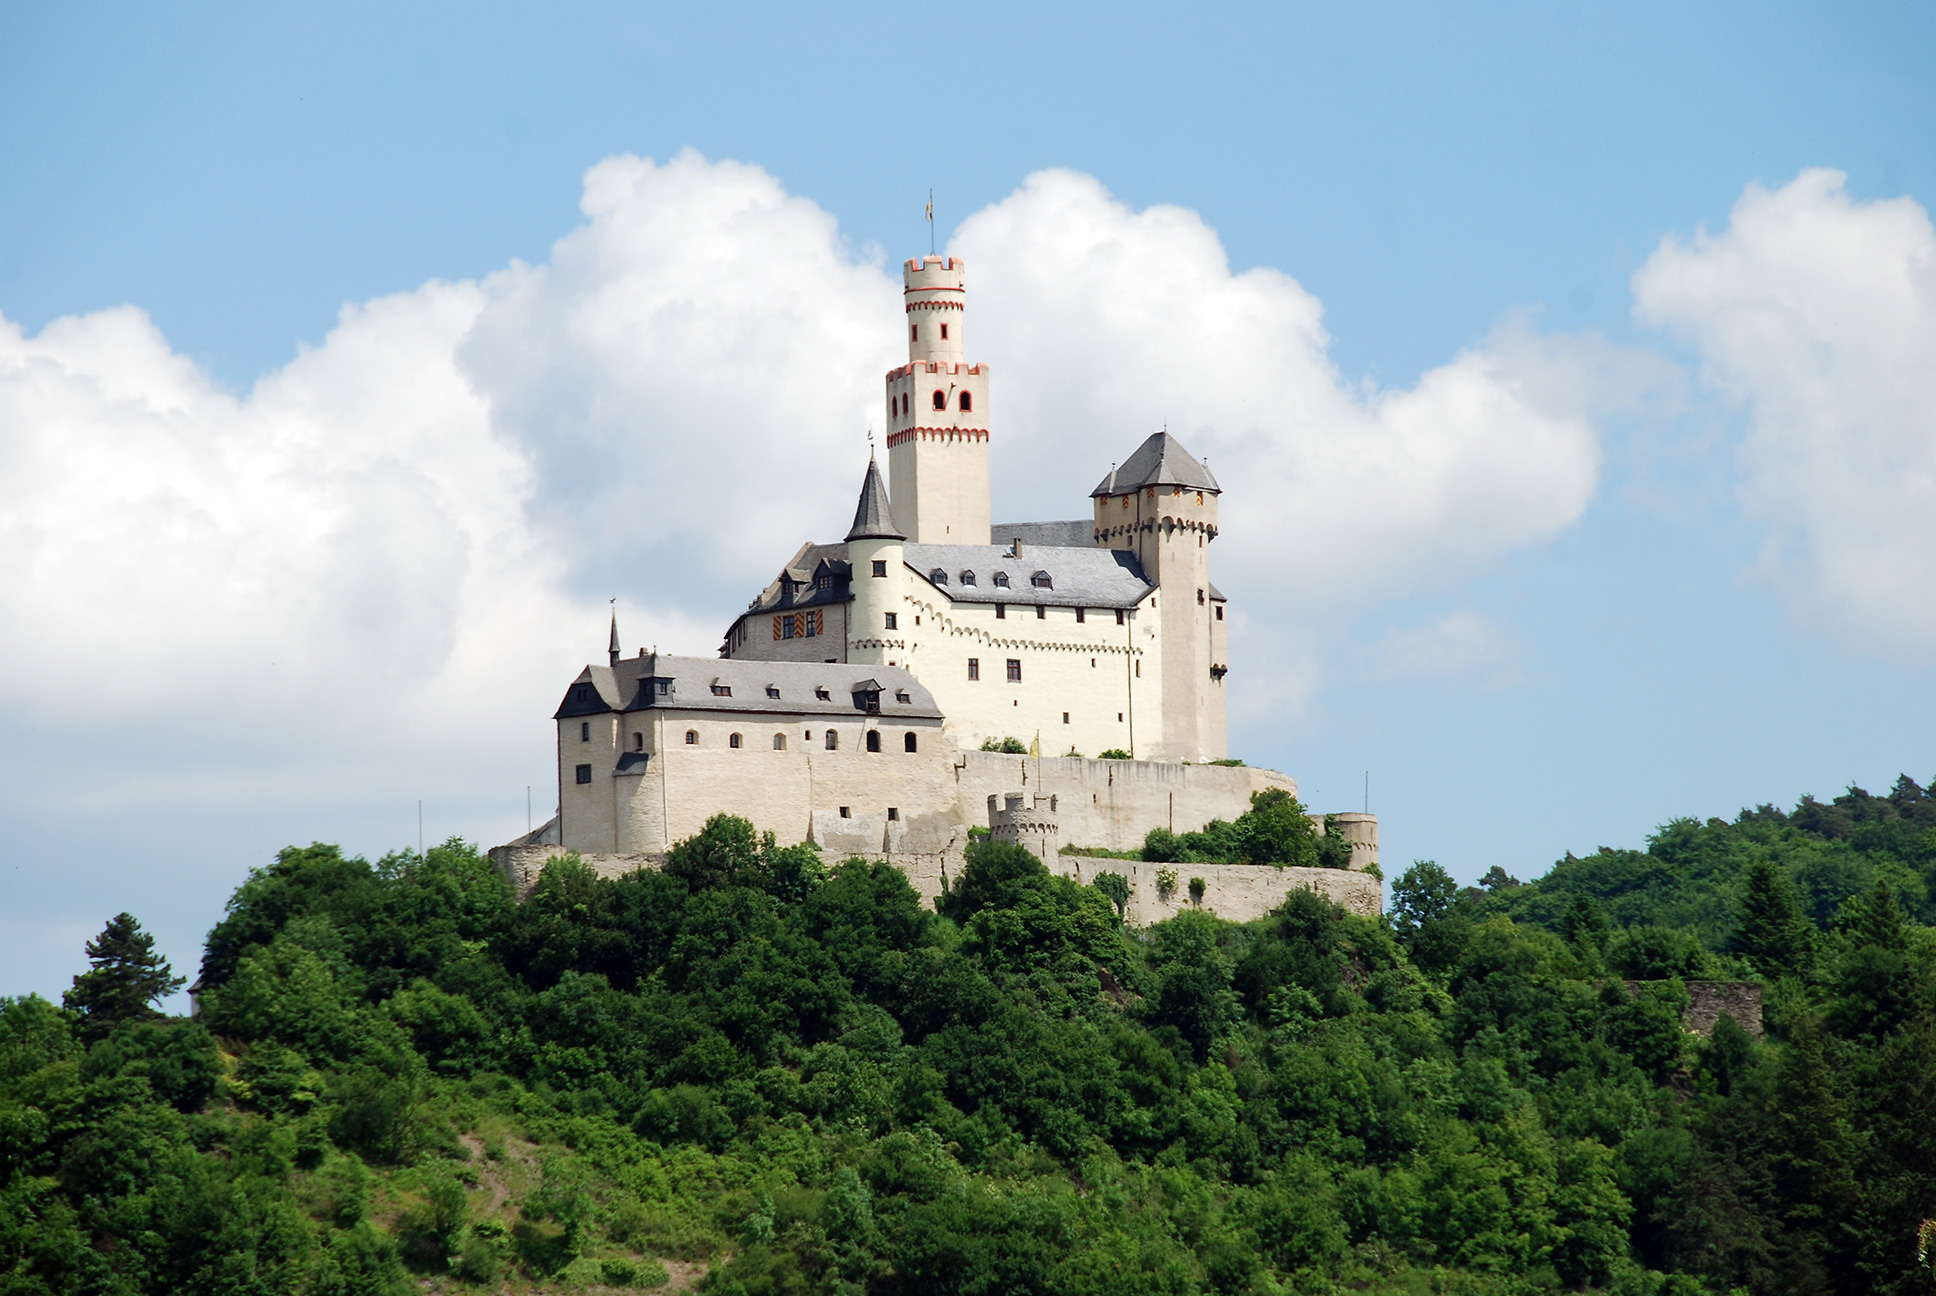 Enchanting Europe - Germany, Koblenz, Marksburg Castle